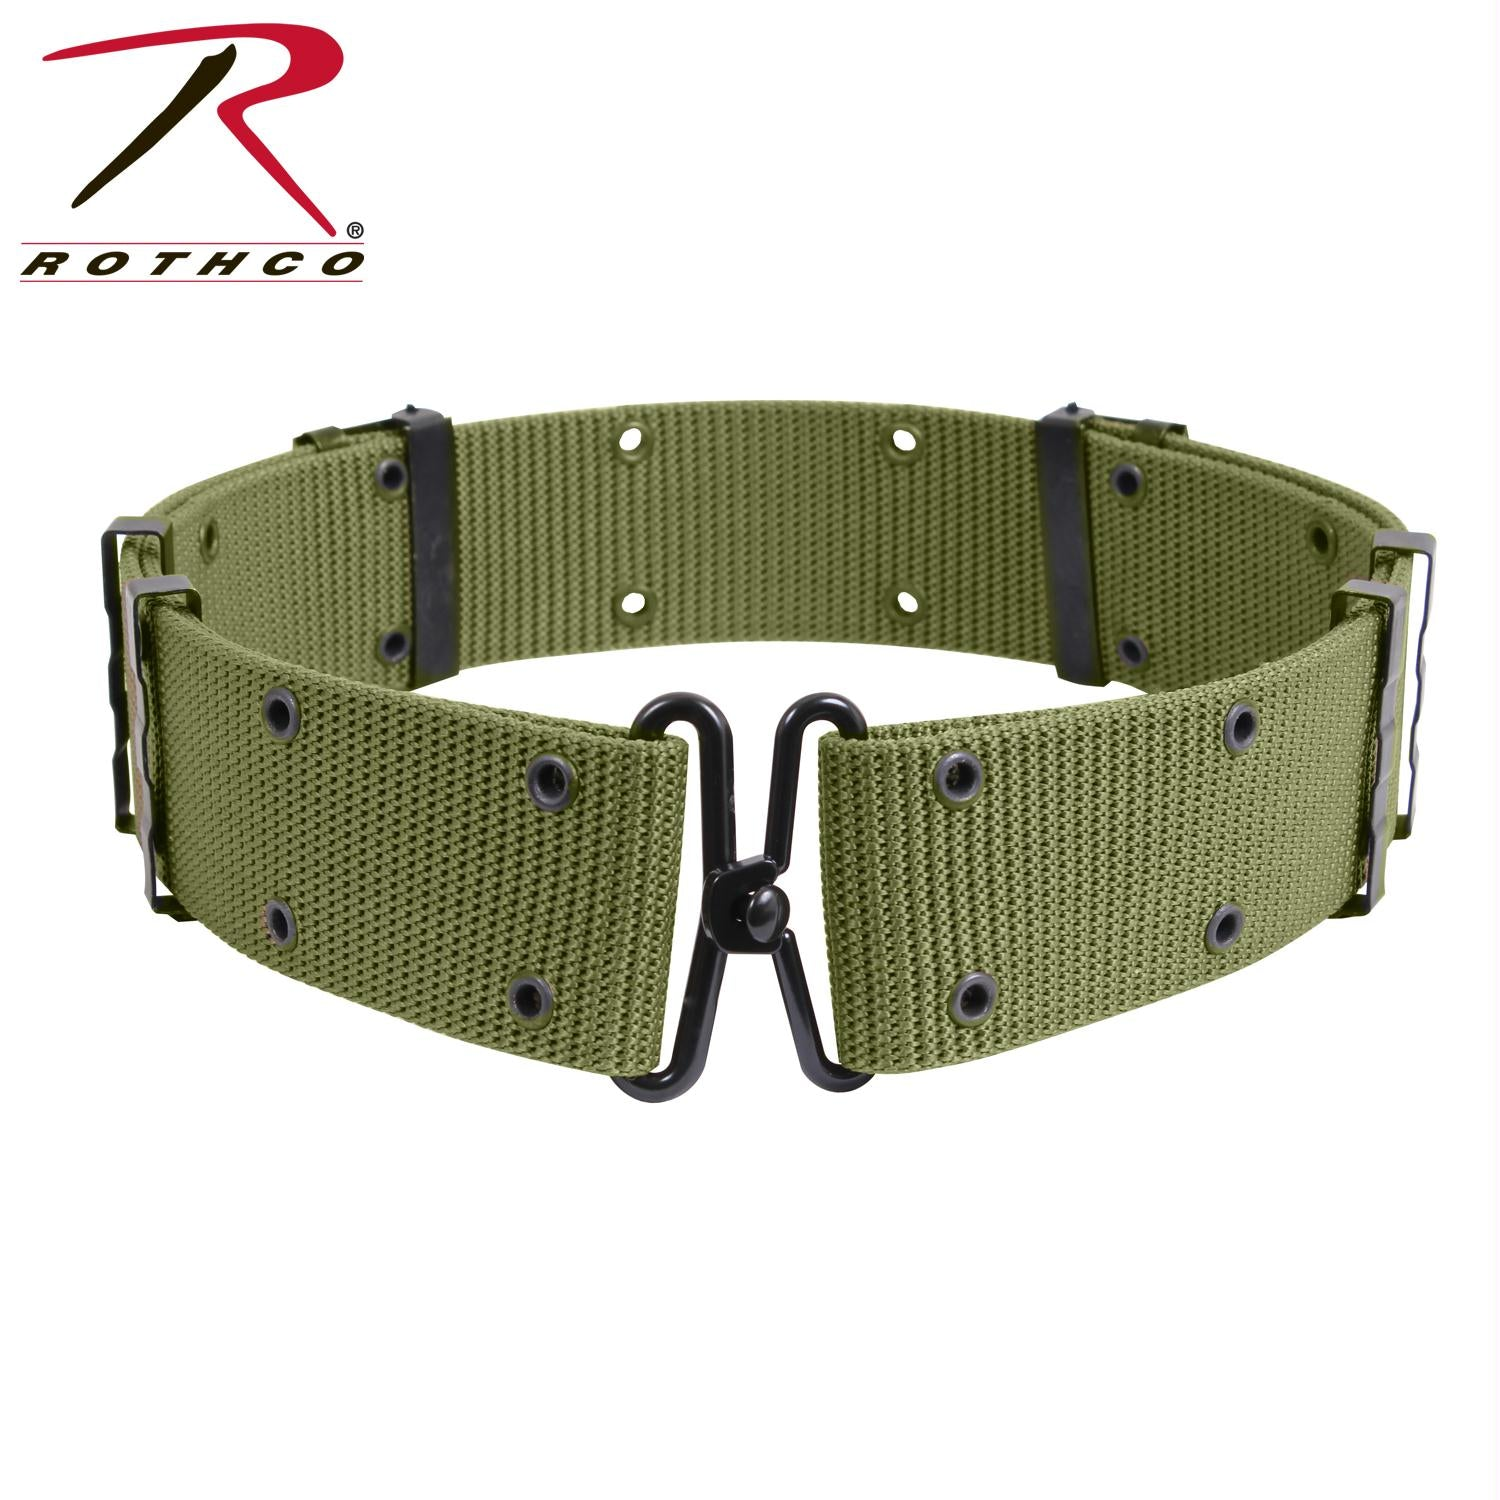 Rothco GI Style Pistol Belt With Metal Buckles - Olive Drab / L